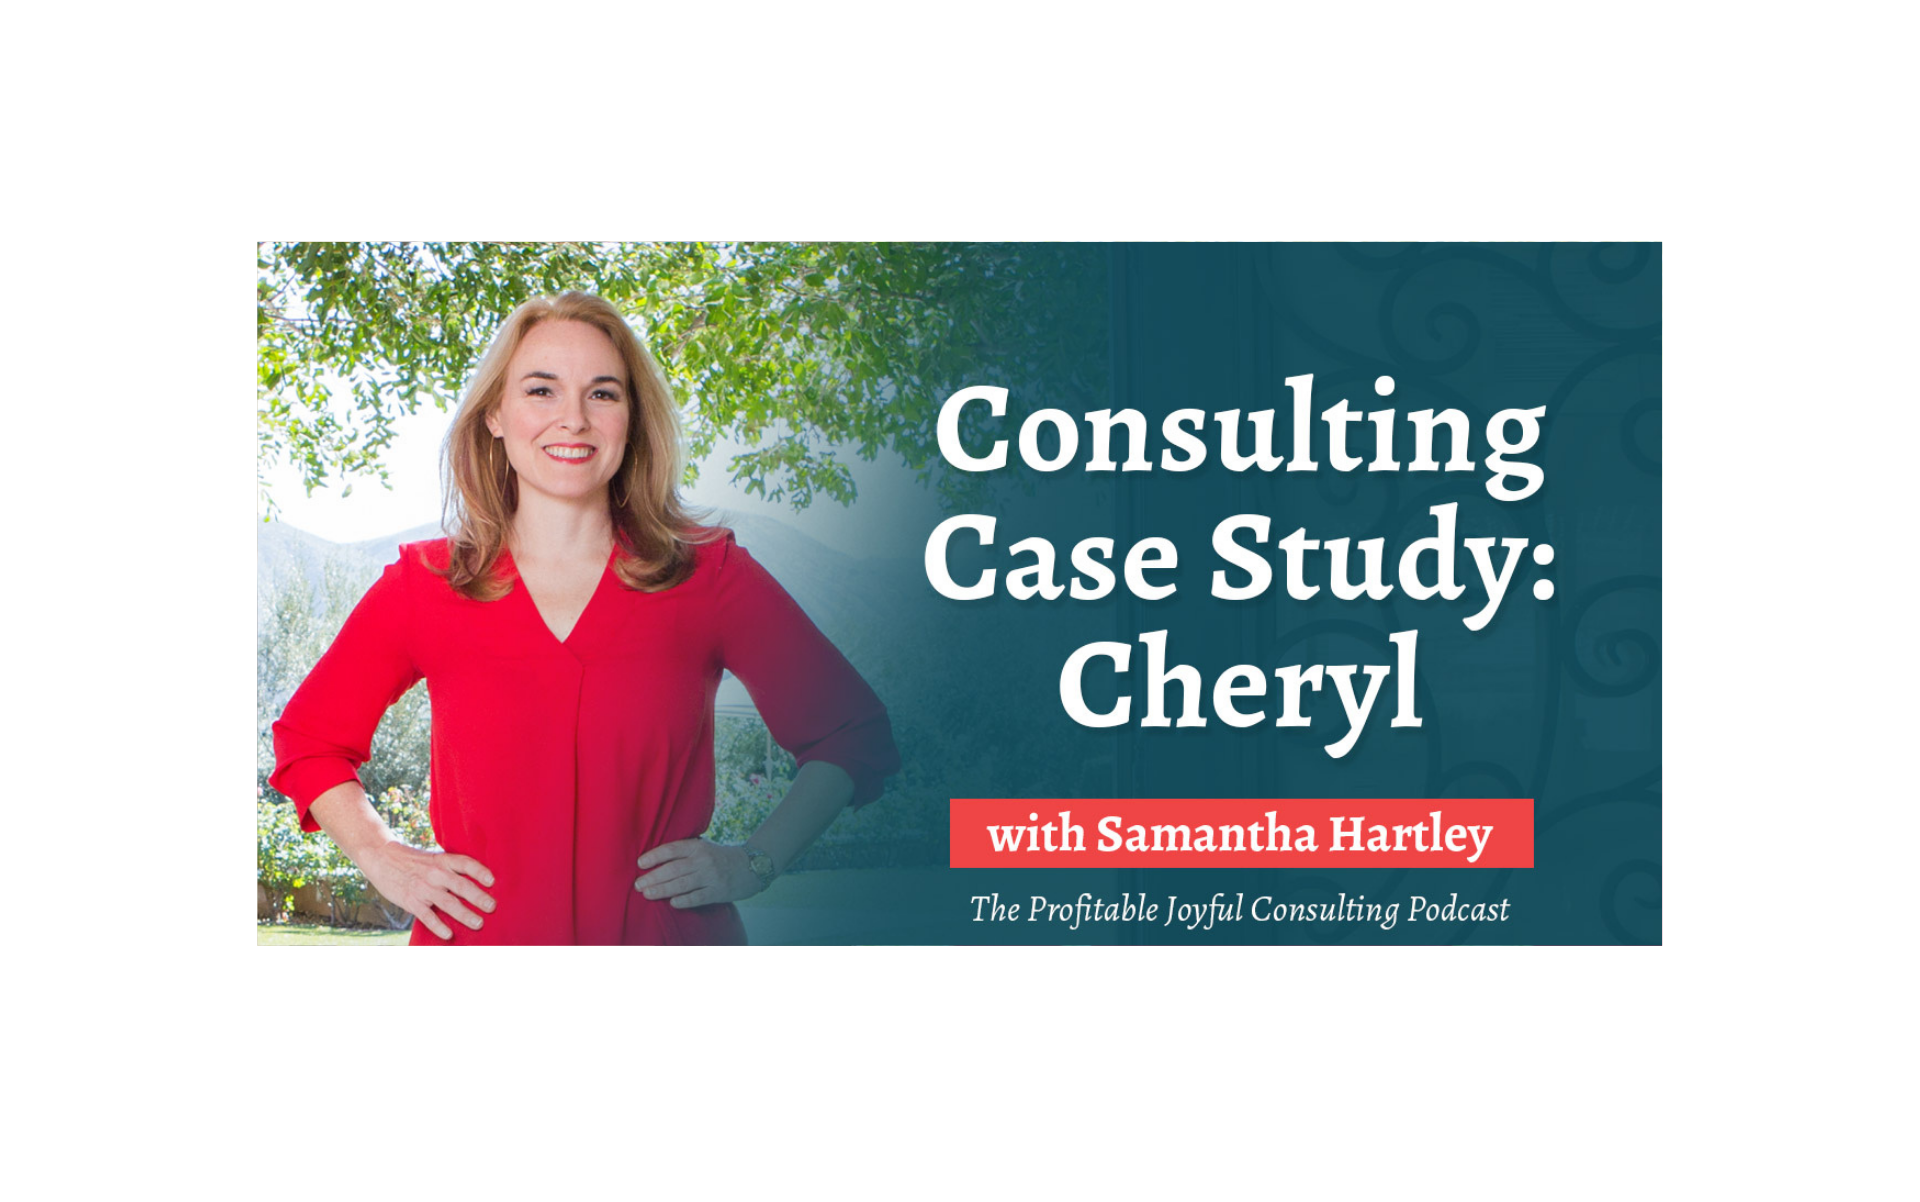 Consulting Case Study: Cheryl